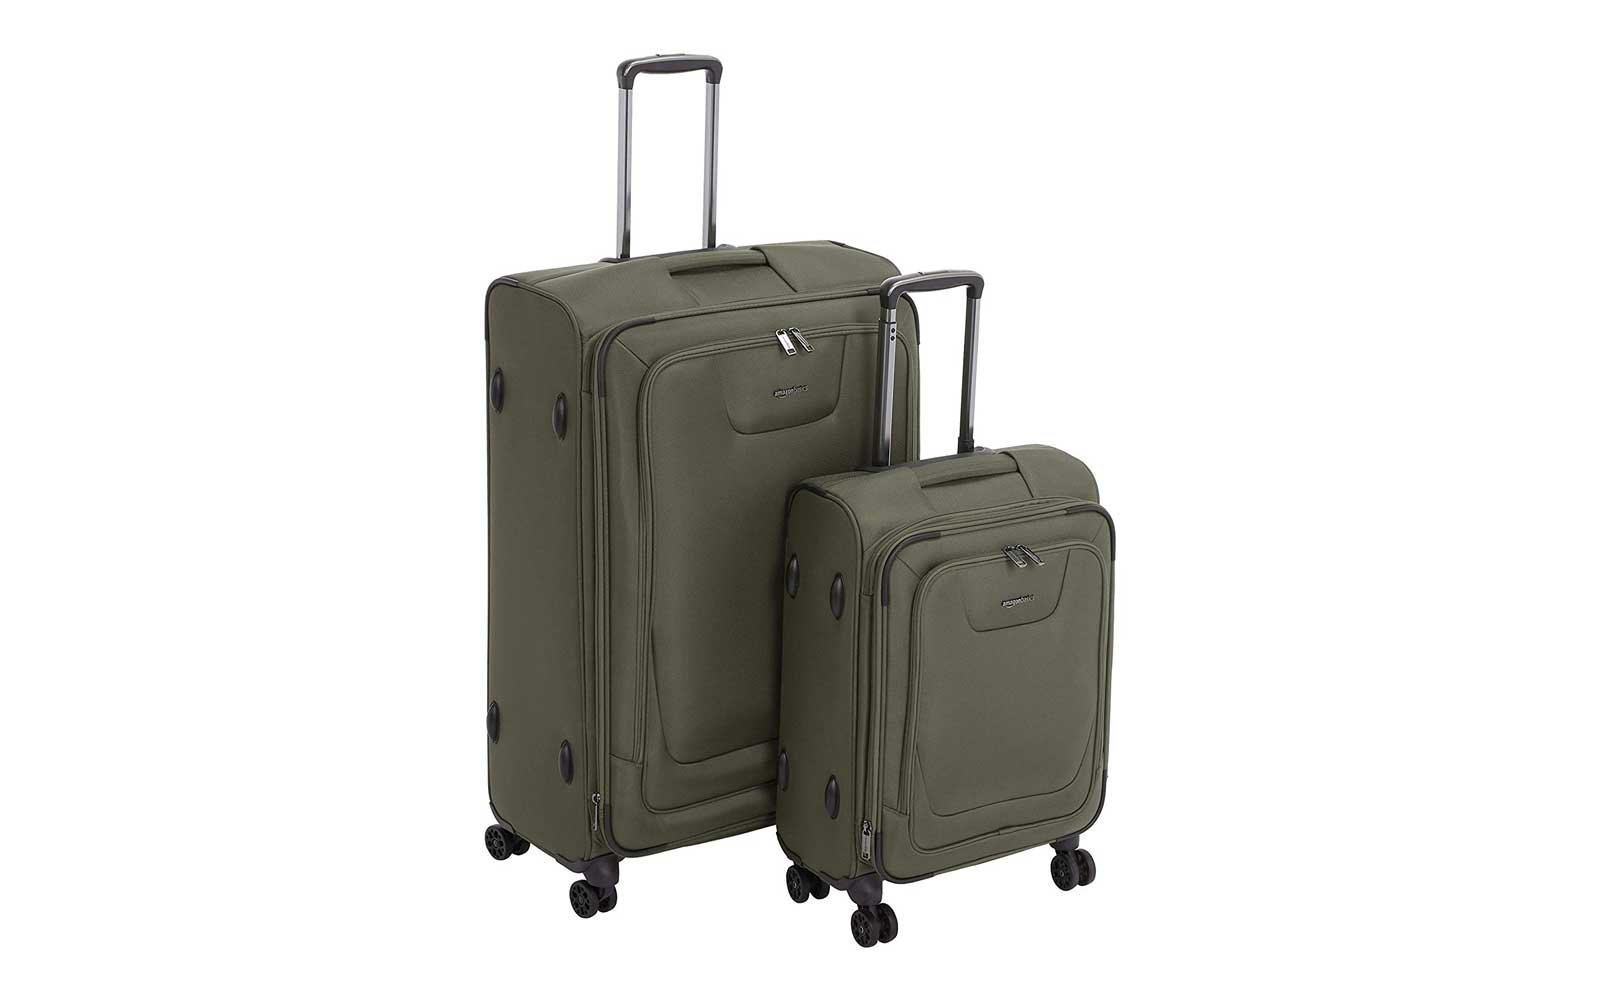 amazon 12 days of deals luggage sale